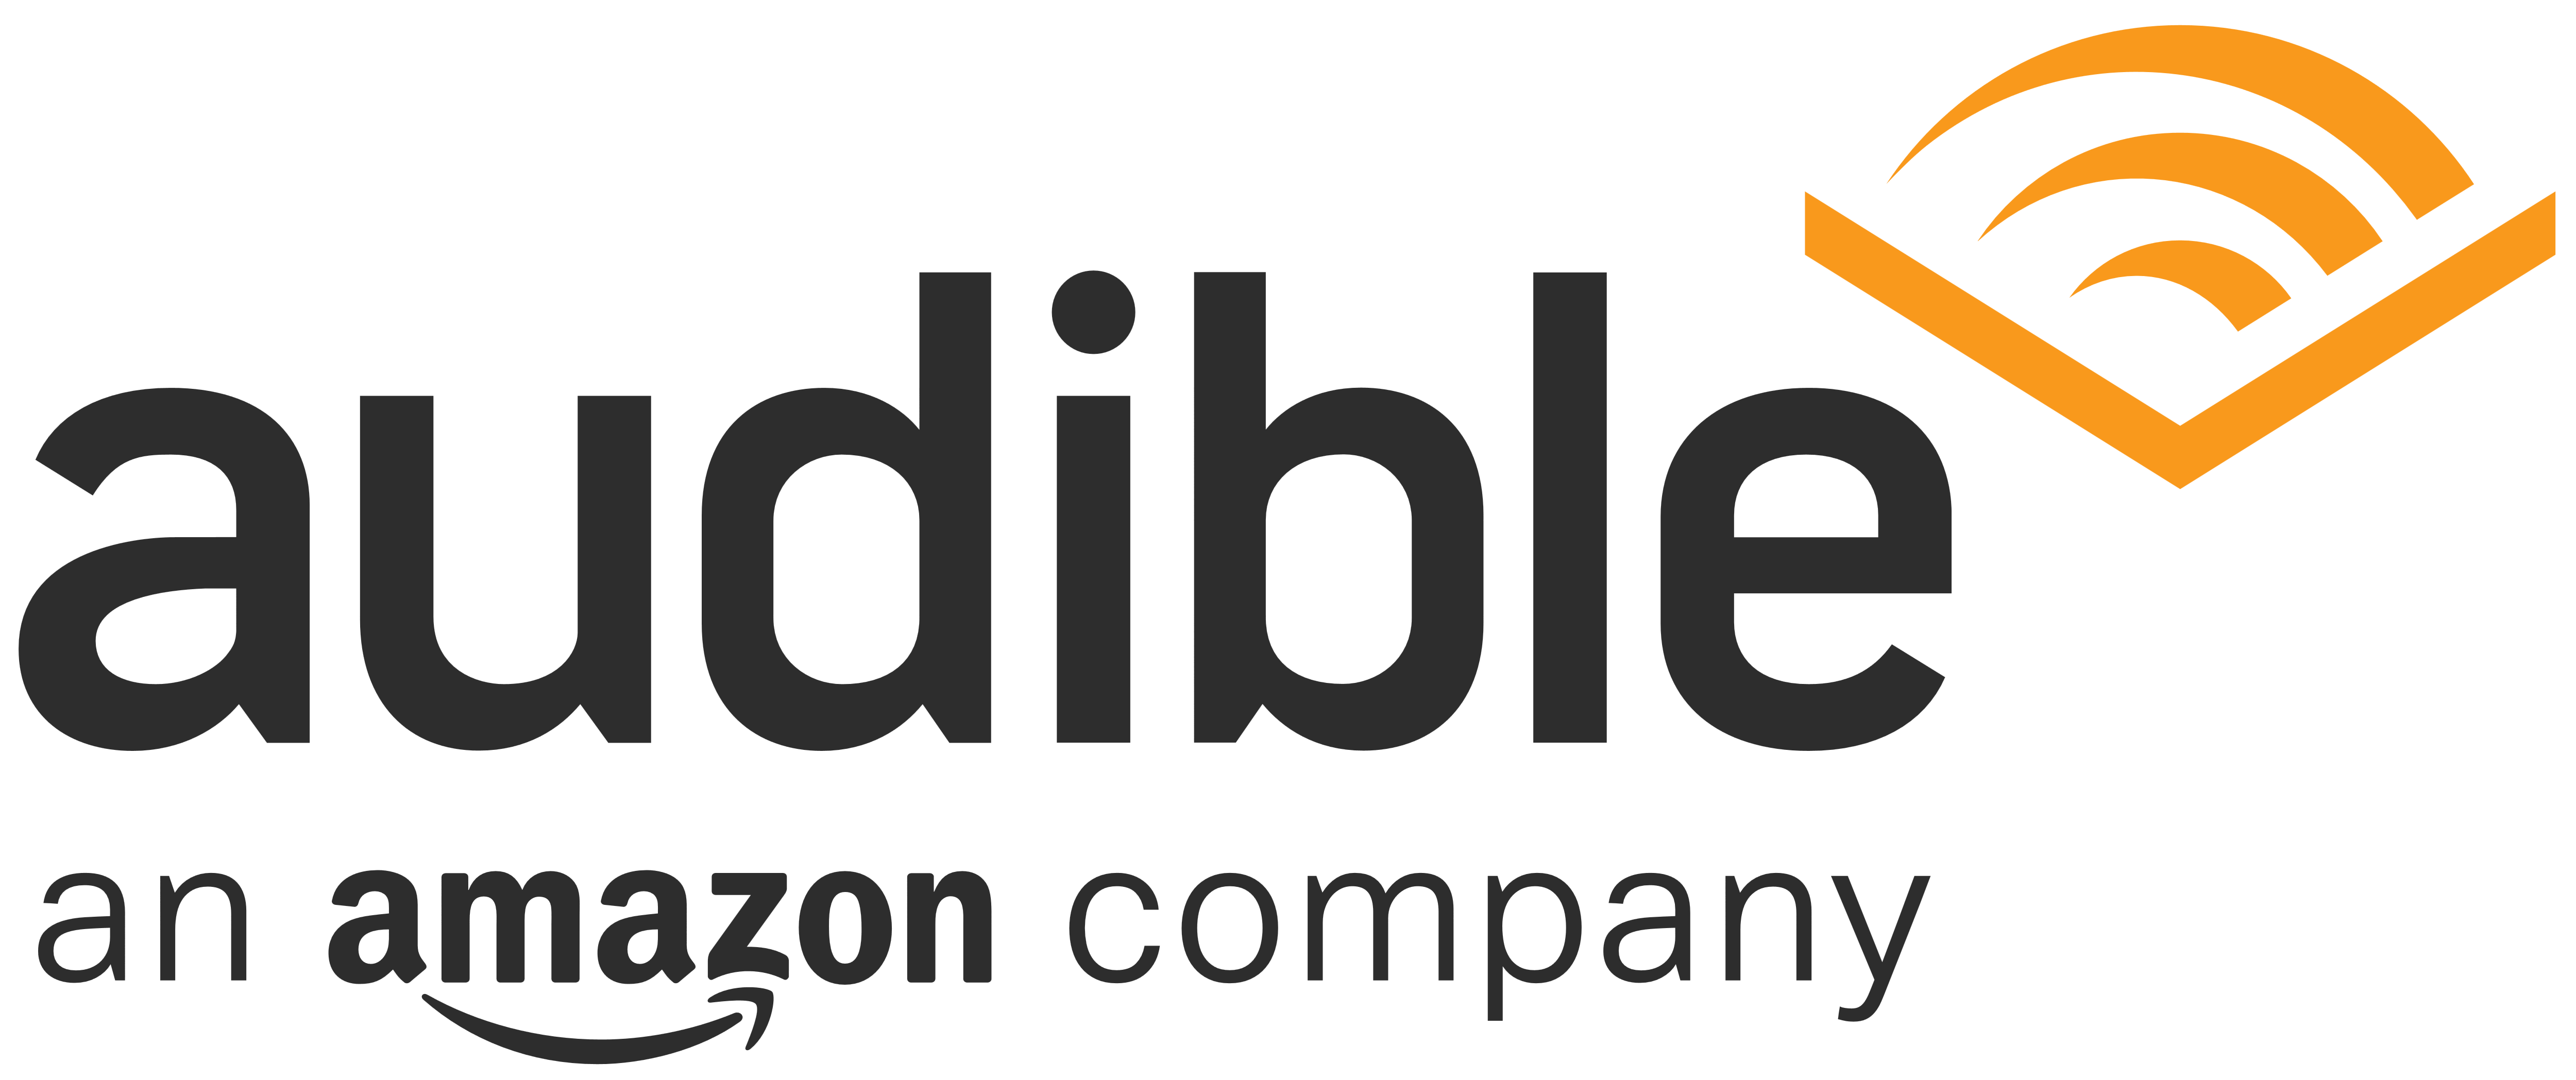 audible amazon png logo vector 6705